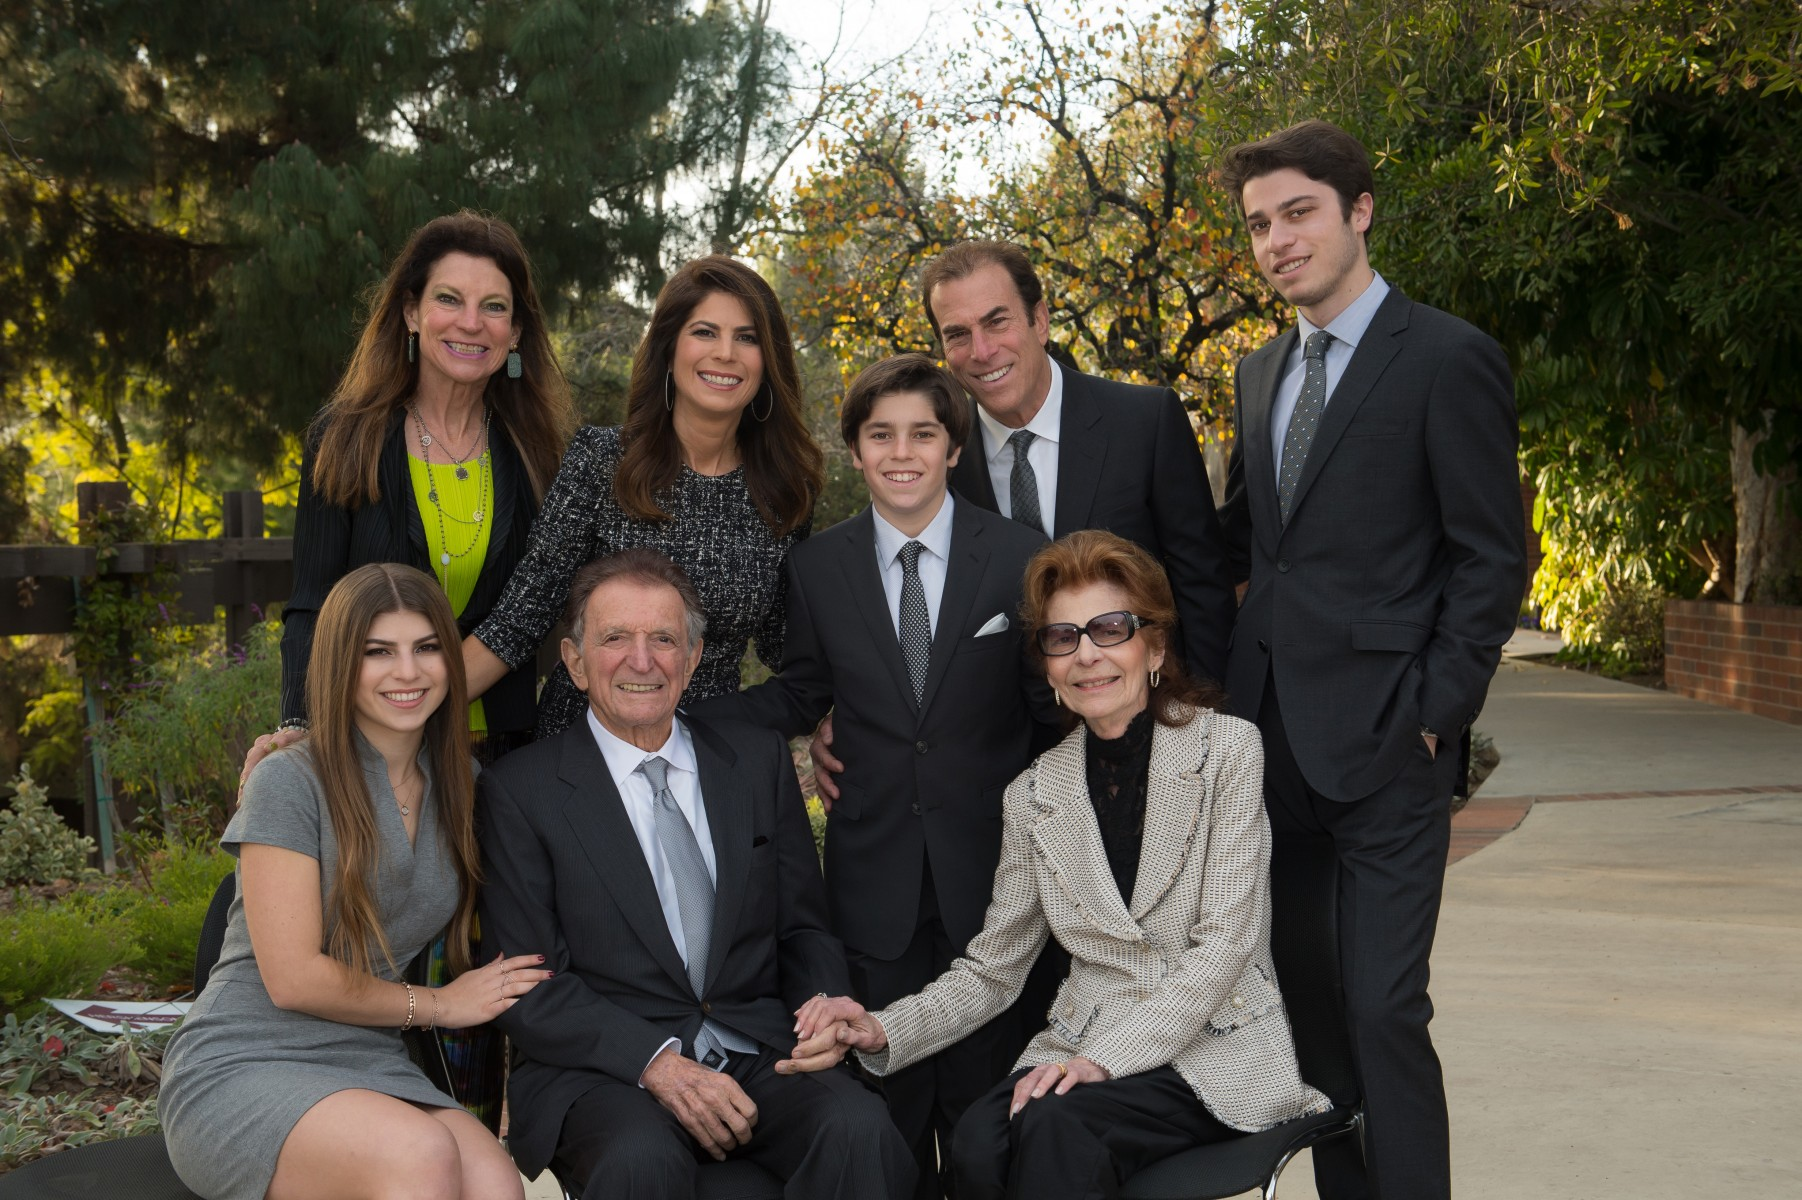 Melinda Goldrich (standing, far left) and Andrea Goldrich Cayton (standing, second from left) have donated $10 million in honor of their late father, Jona Goldrich (seated, center), to establish the Jona Goldrich Center for Alzheimer's and Memory Disorders. Photo courtesy of the Goldrich family.